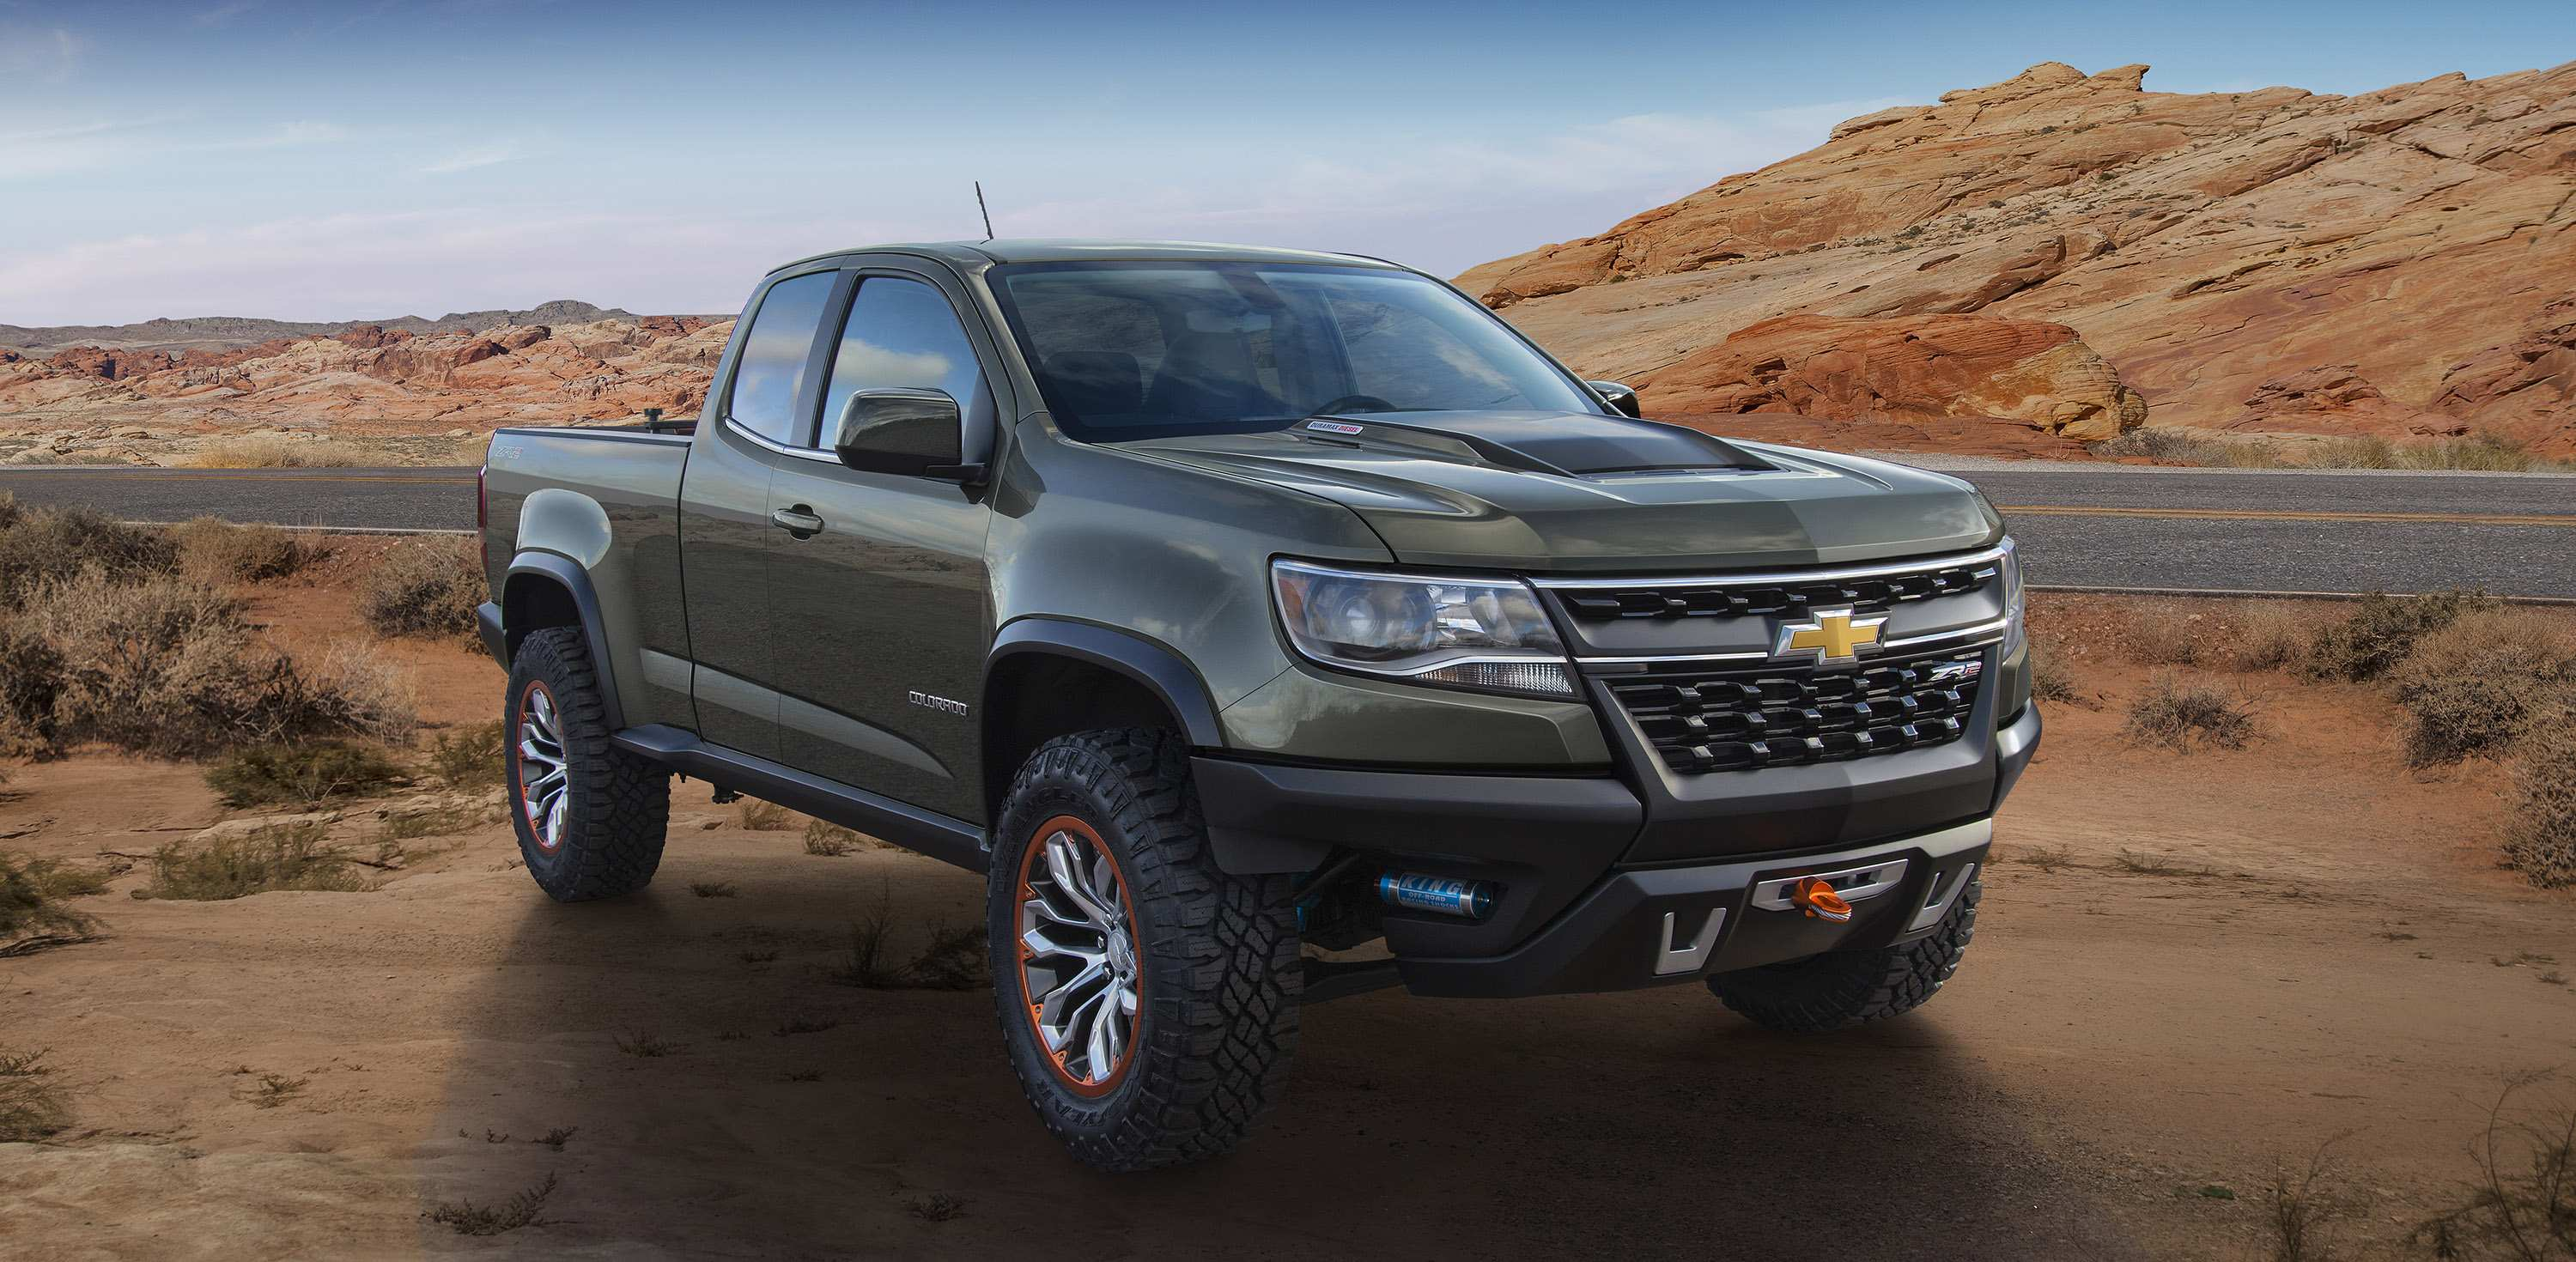 72 All New The Chevrolet 2019 Zr2 New Concept Price for The Chevrolet 2019 Zr2 New Concept